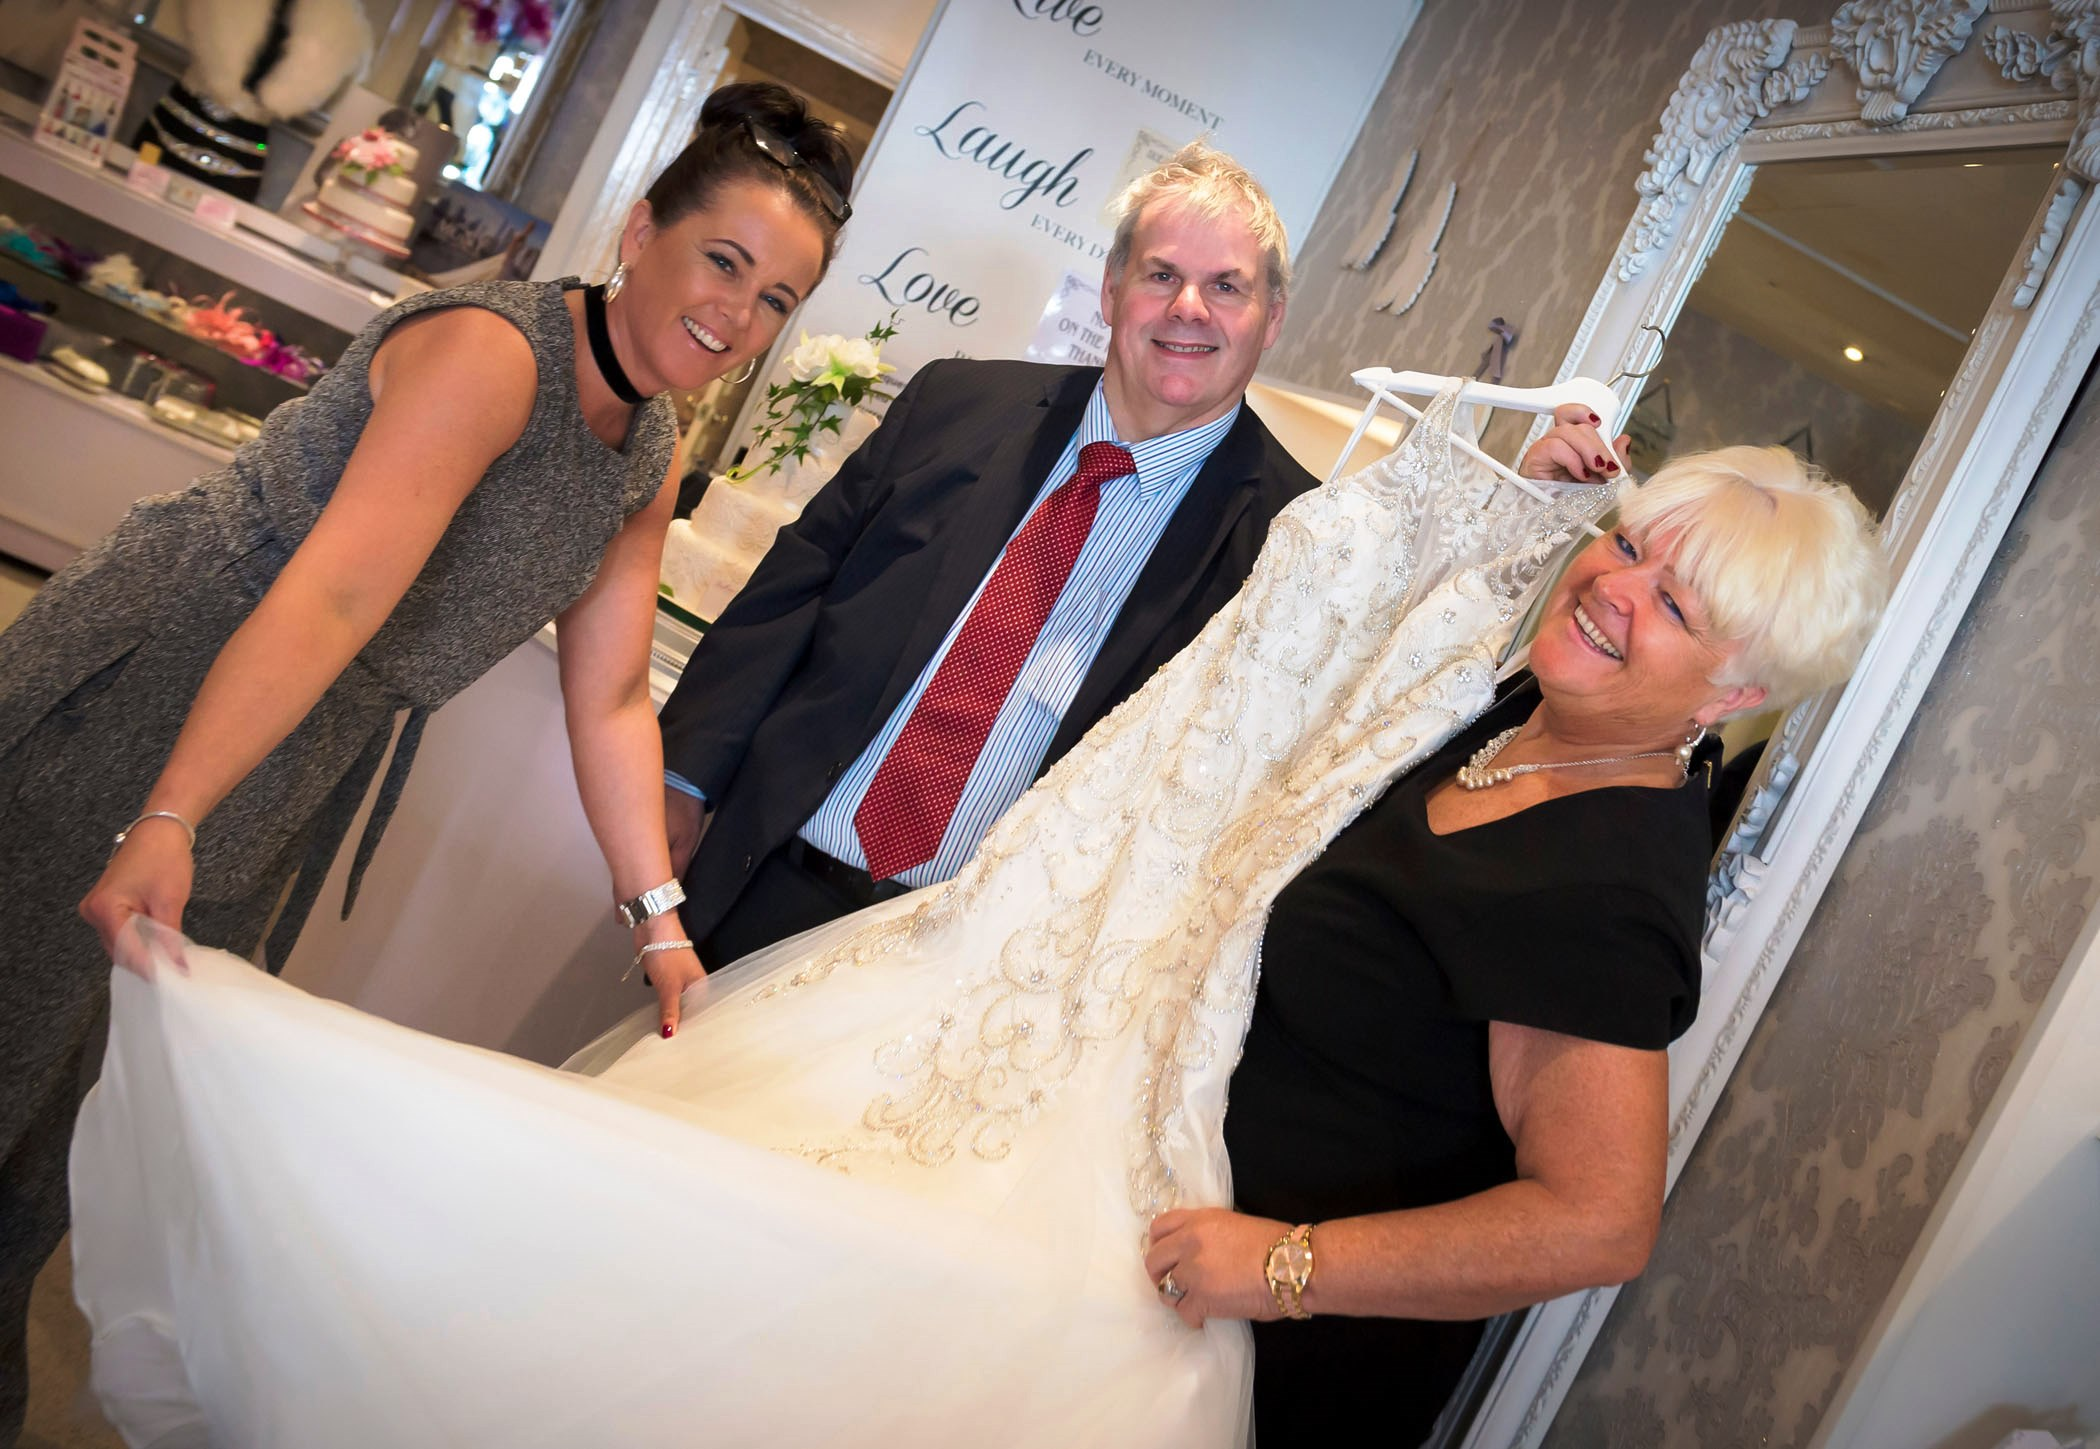 Image: Heywood bridal boutique says 'I do' to council's business rates sale